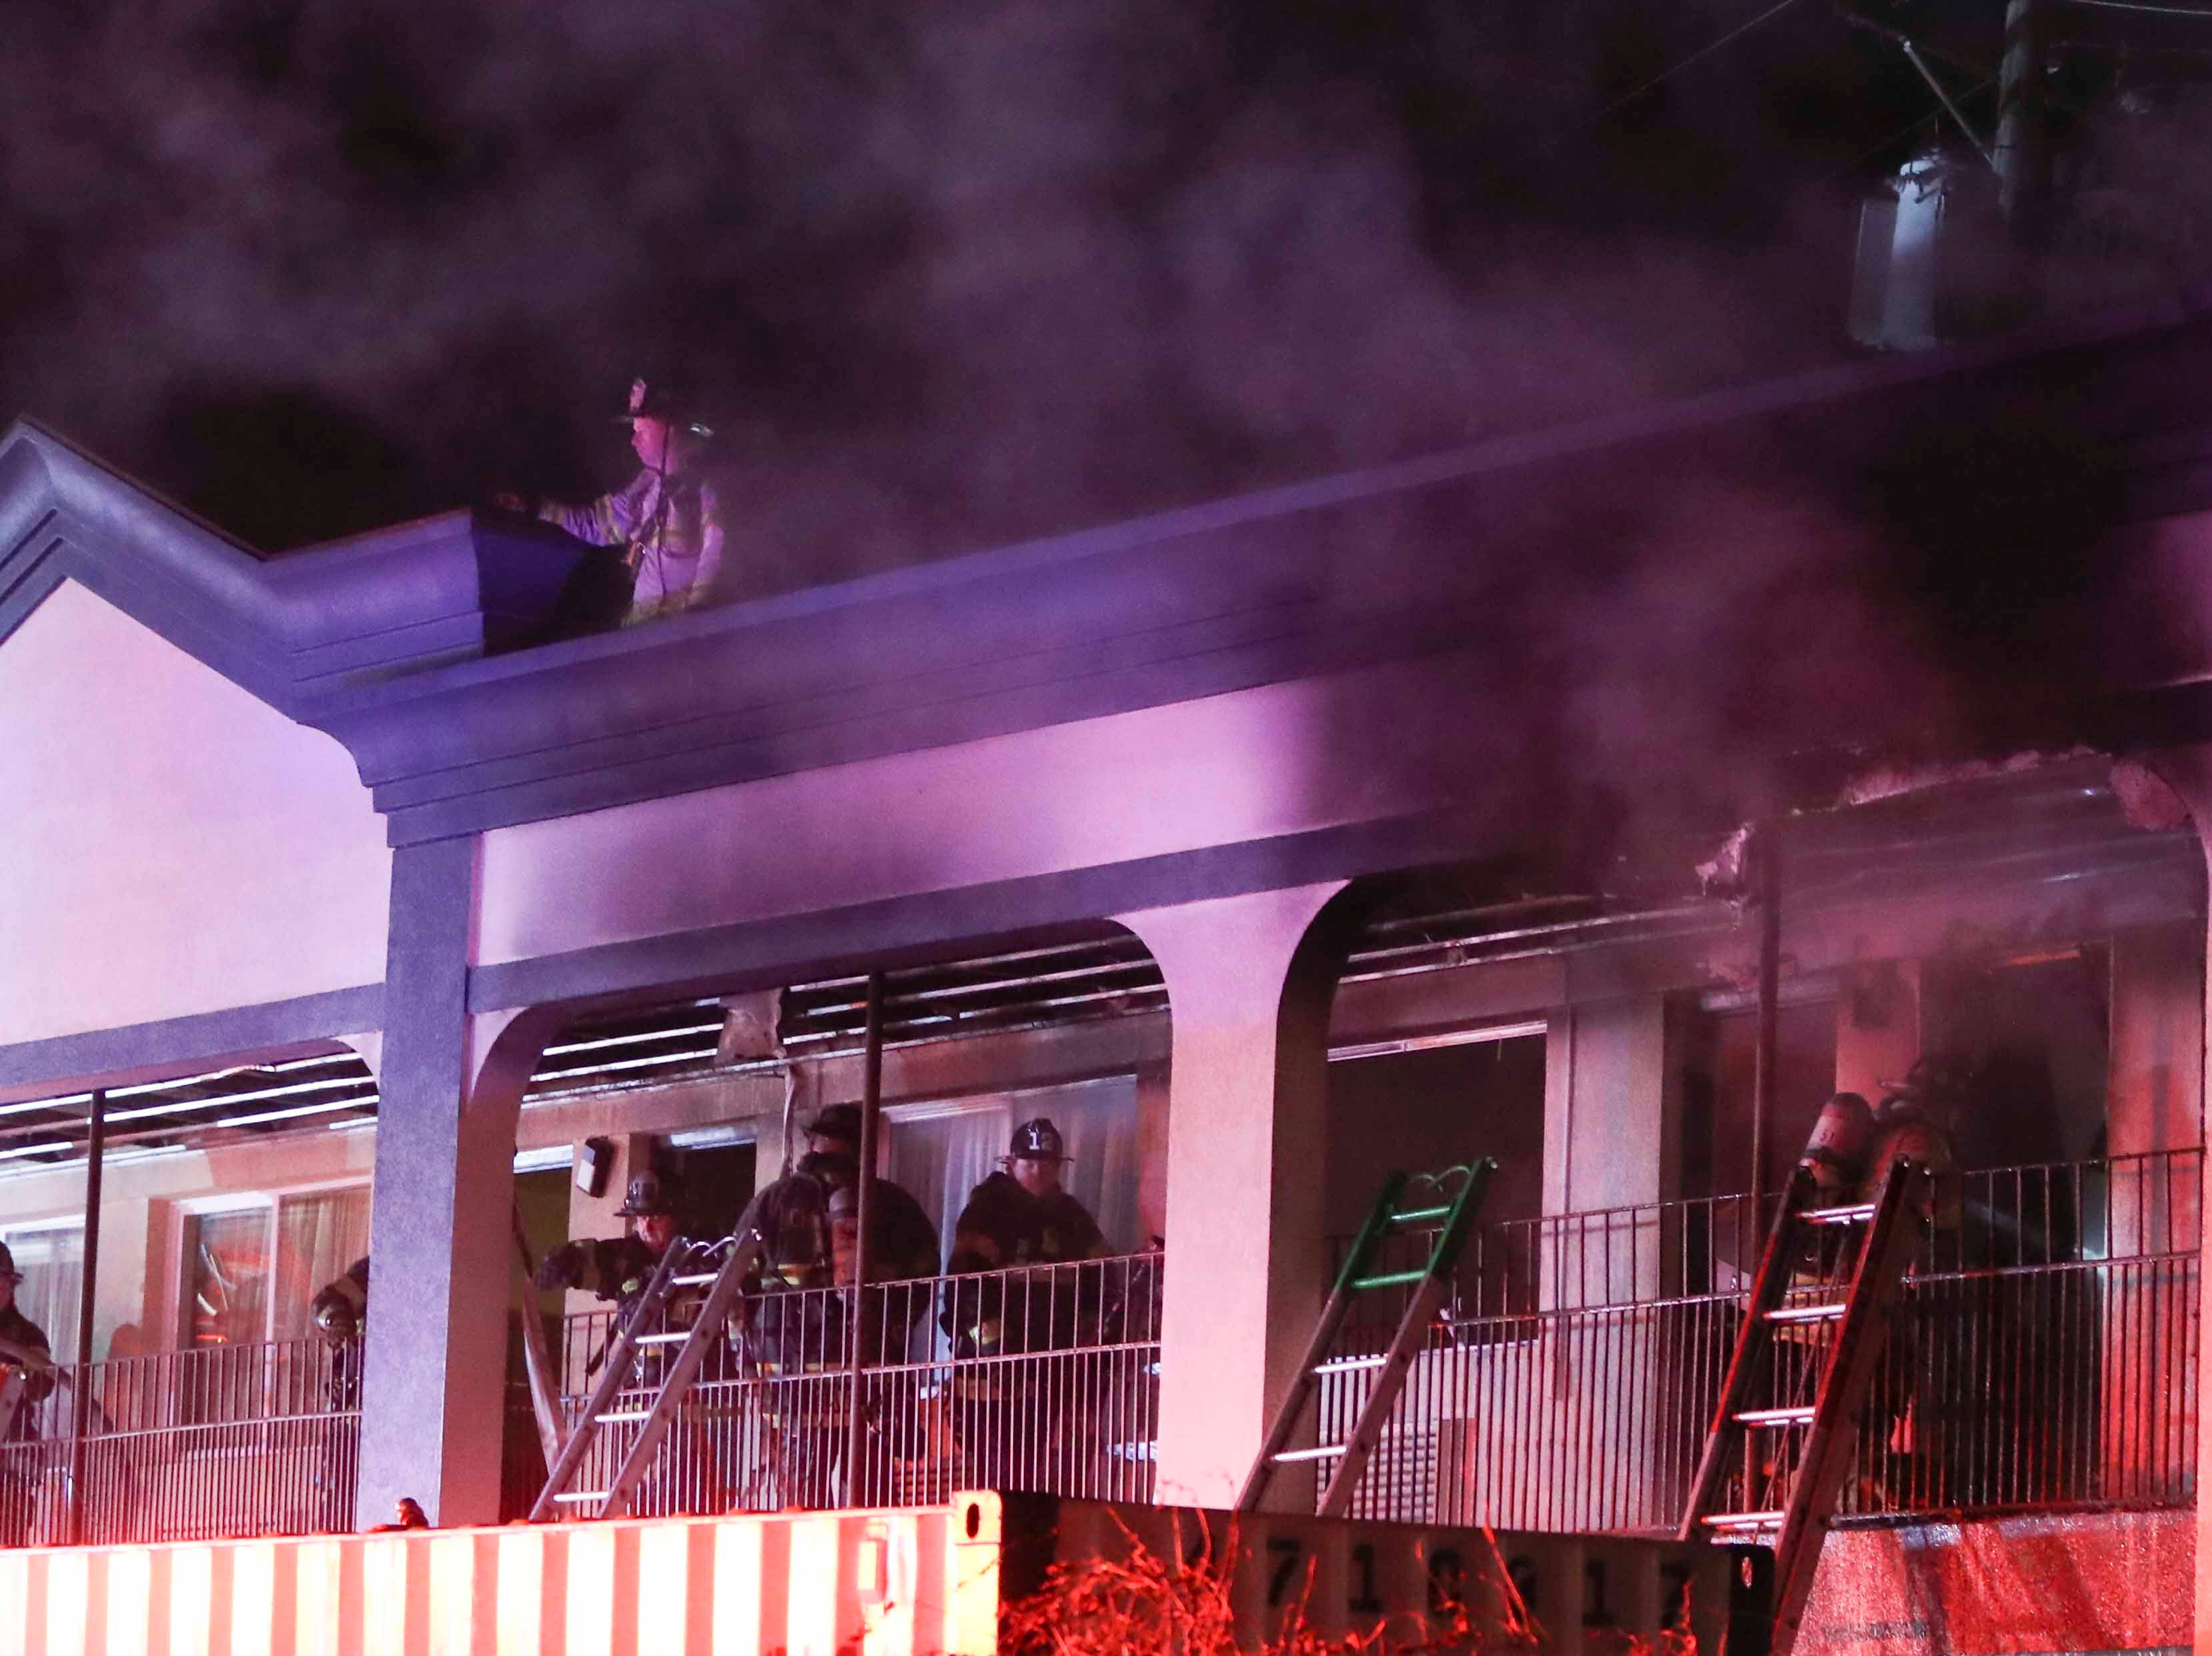 Firefighters work after extinguishing a two-alarm fire in the Super 8 Motel on Newark's Main Street late Friday. Firefighters, alerted to the blaze about 10:45 p.m. , found flames coming from the second floor of one end of the structure. There were no immediate reports of injuries.